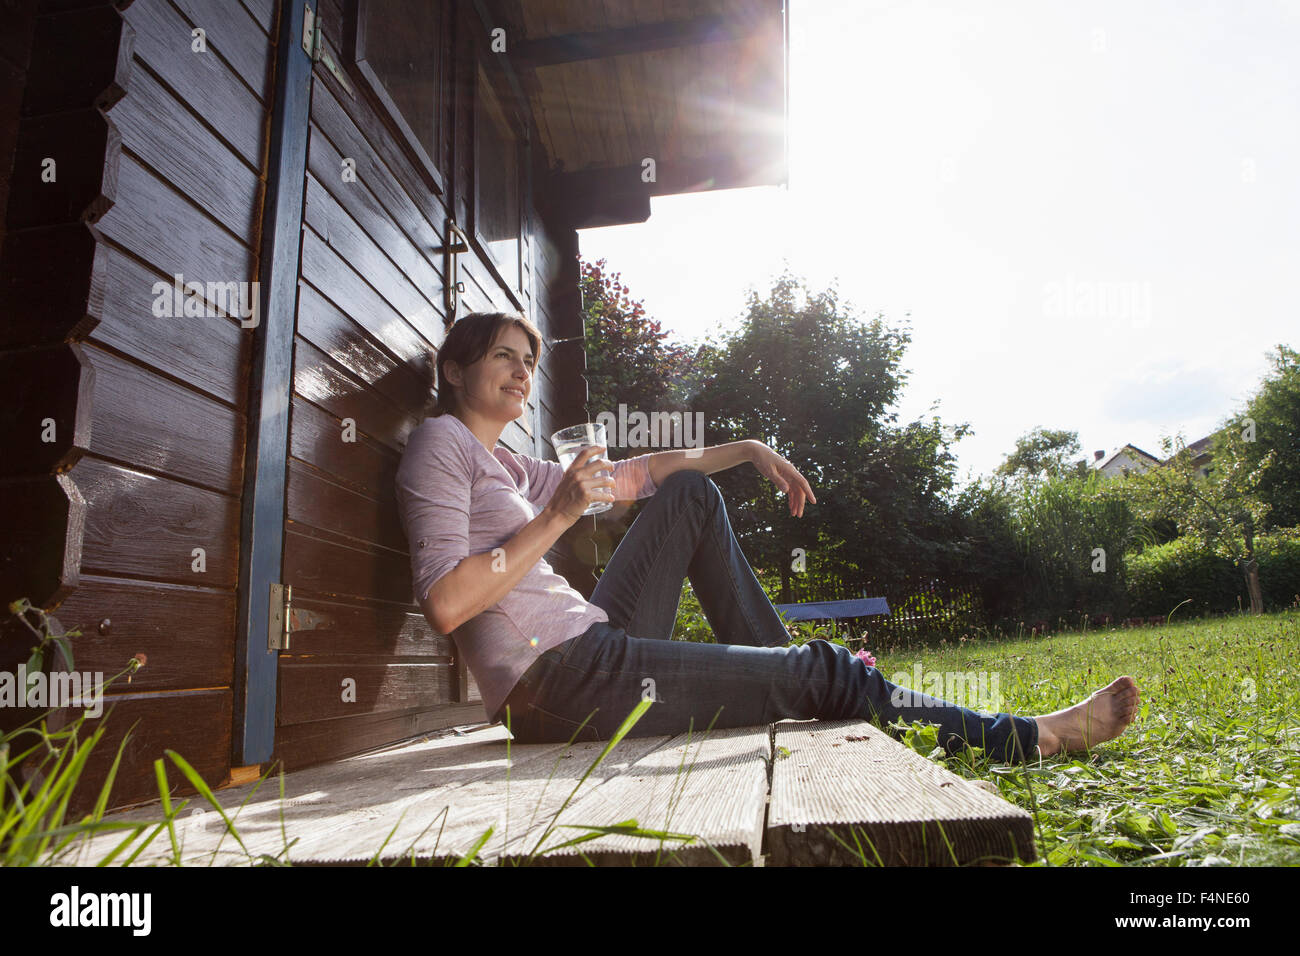 Smiling woman sitting at garden shed with glass of water - Stock Image